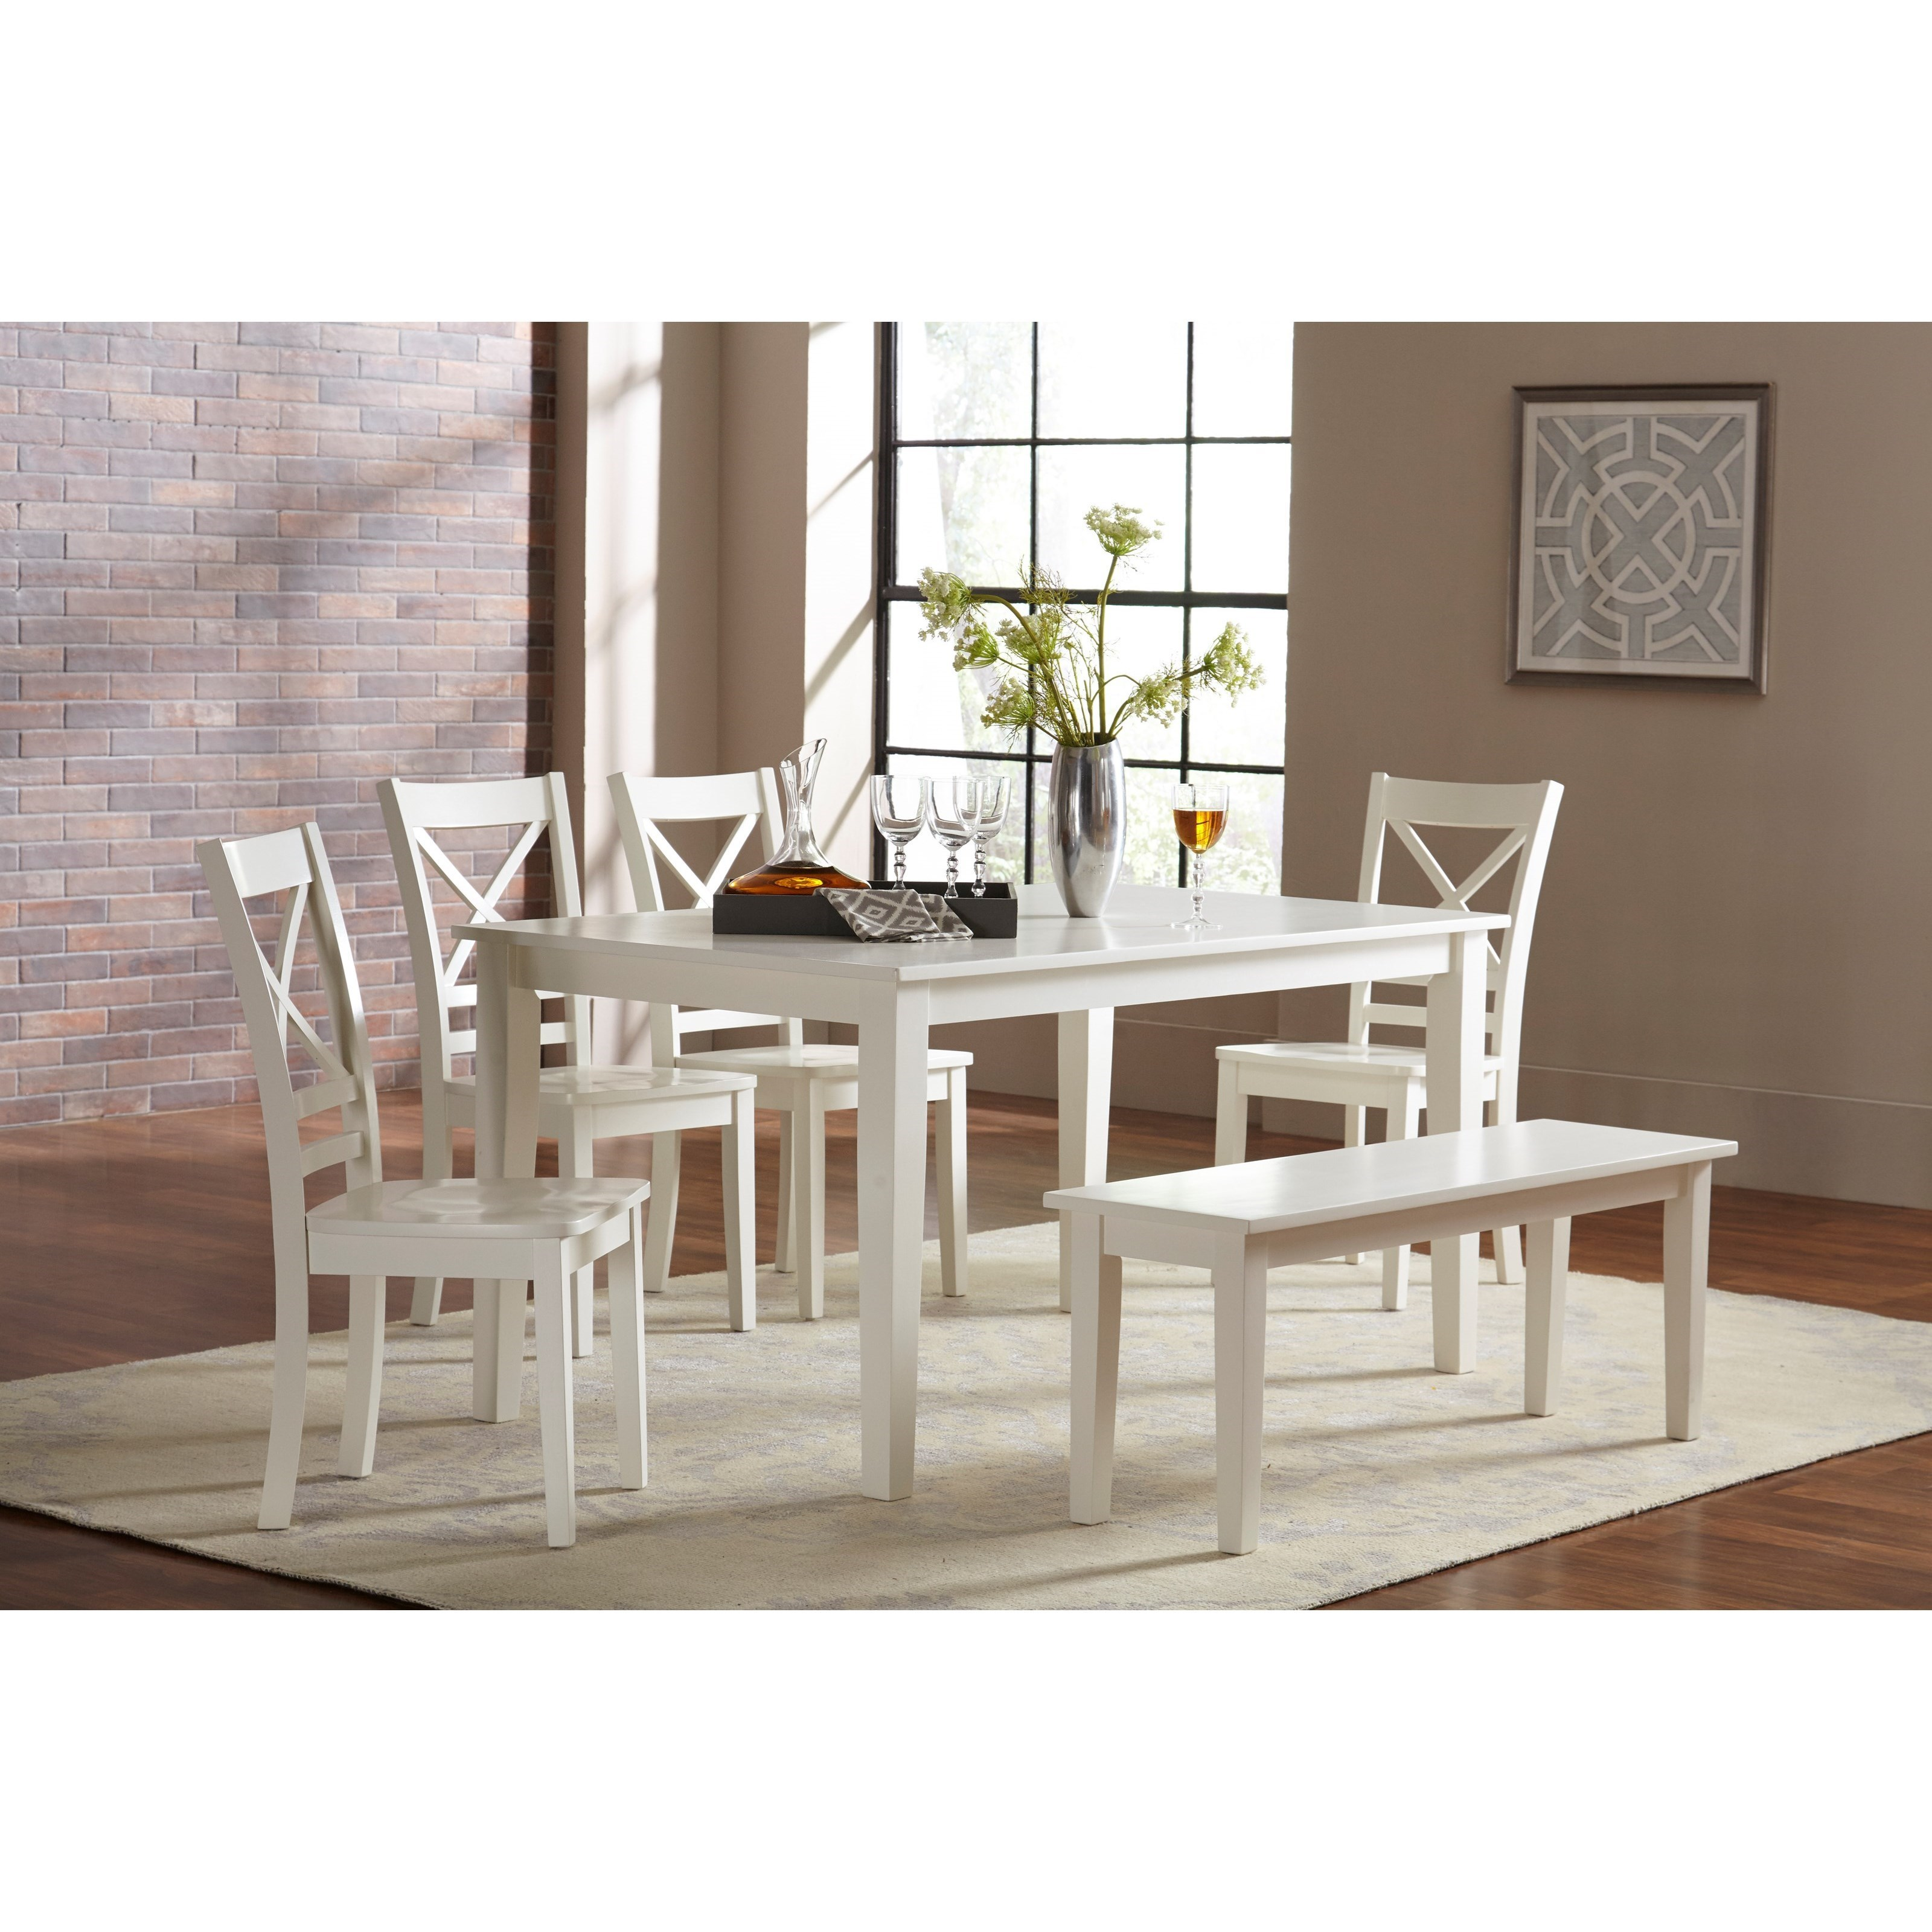 Jofran 3x3x3: WhiteDining Table And Chair/Bench Set